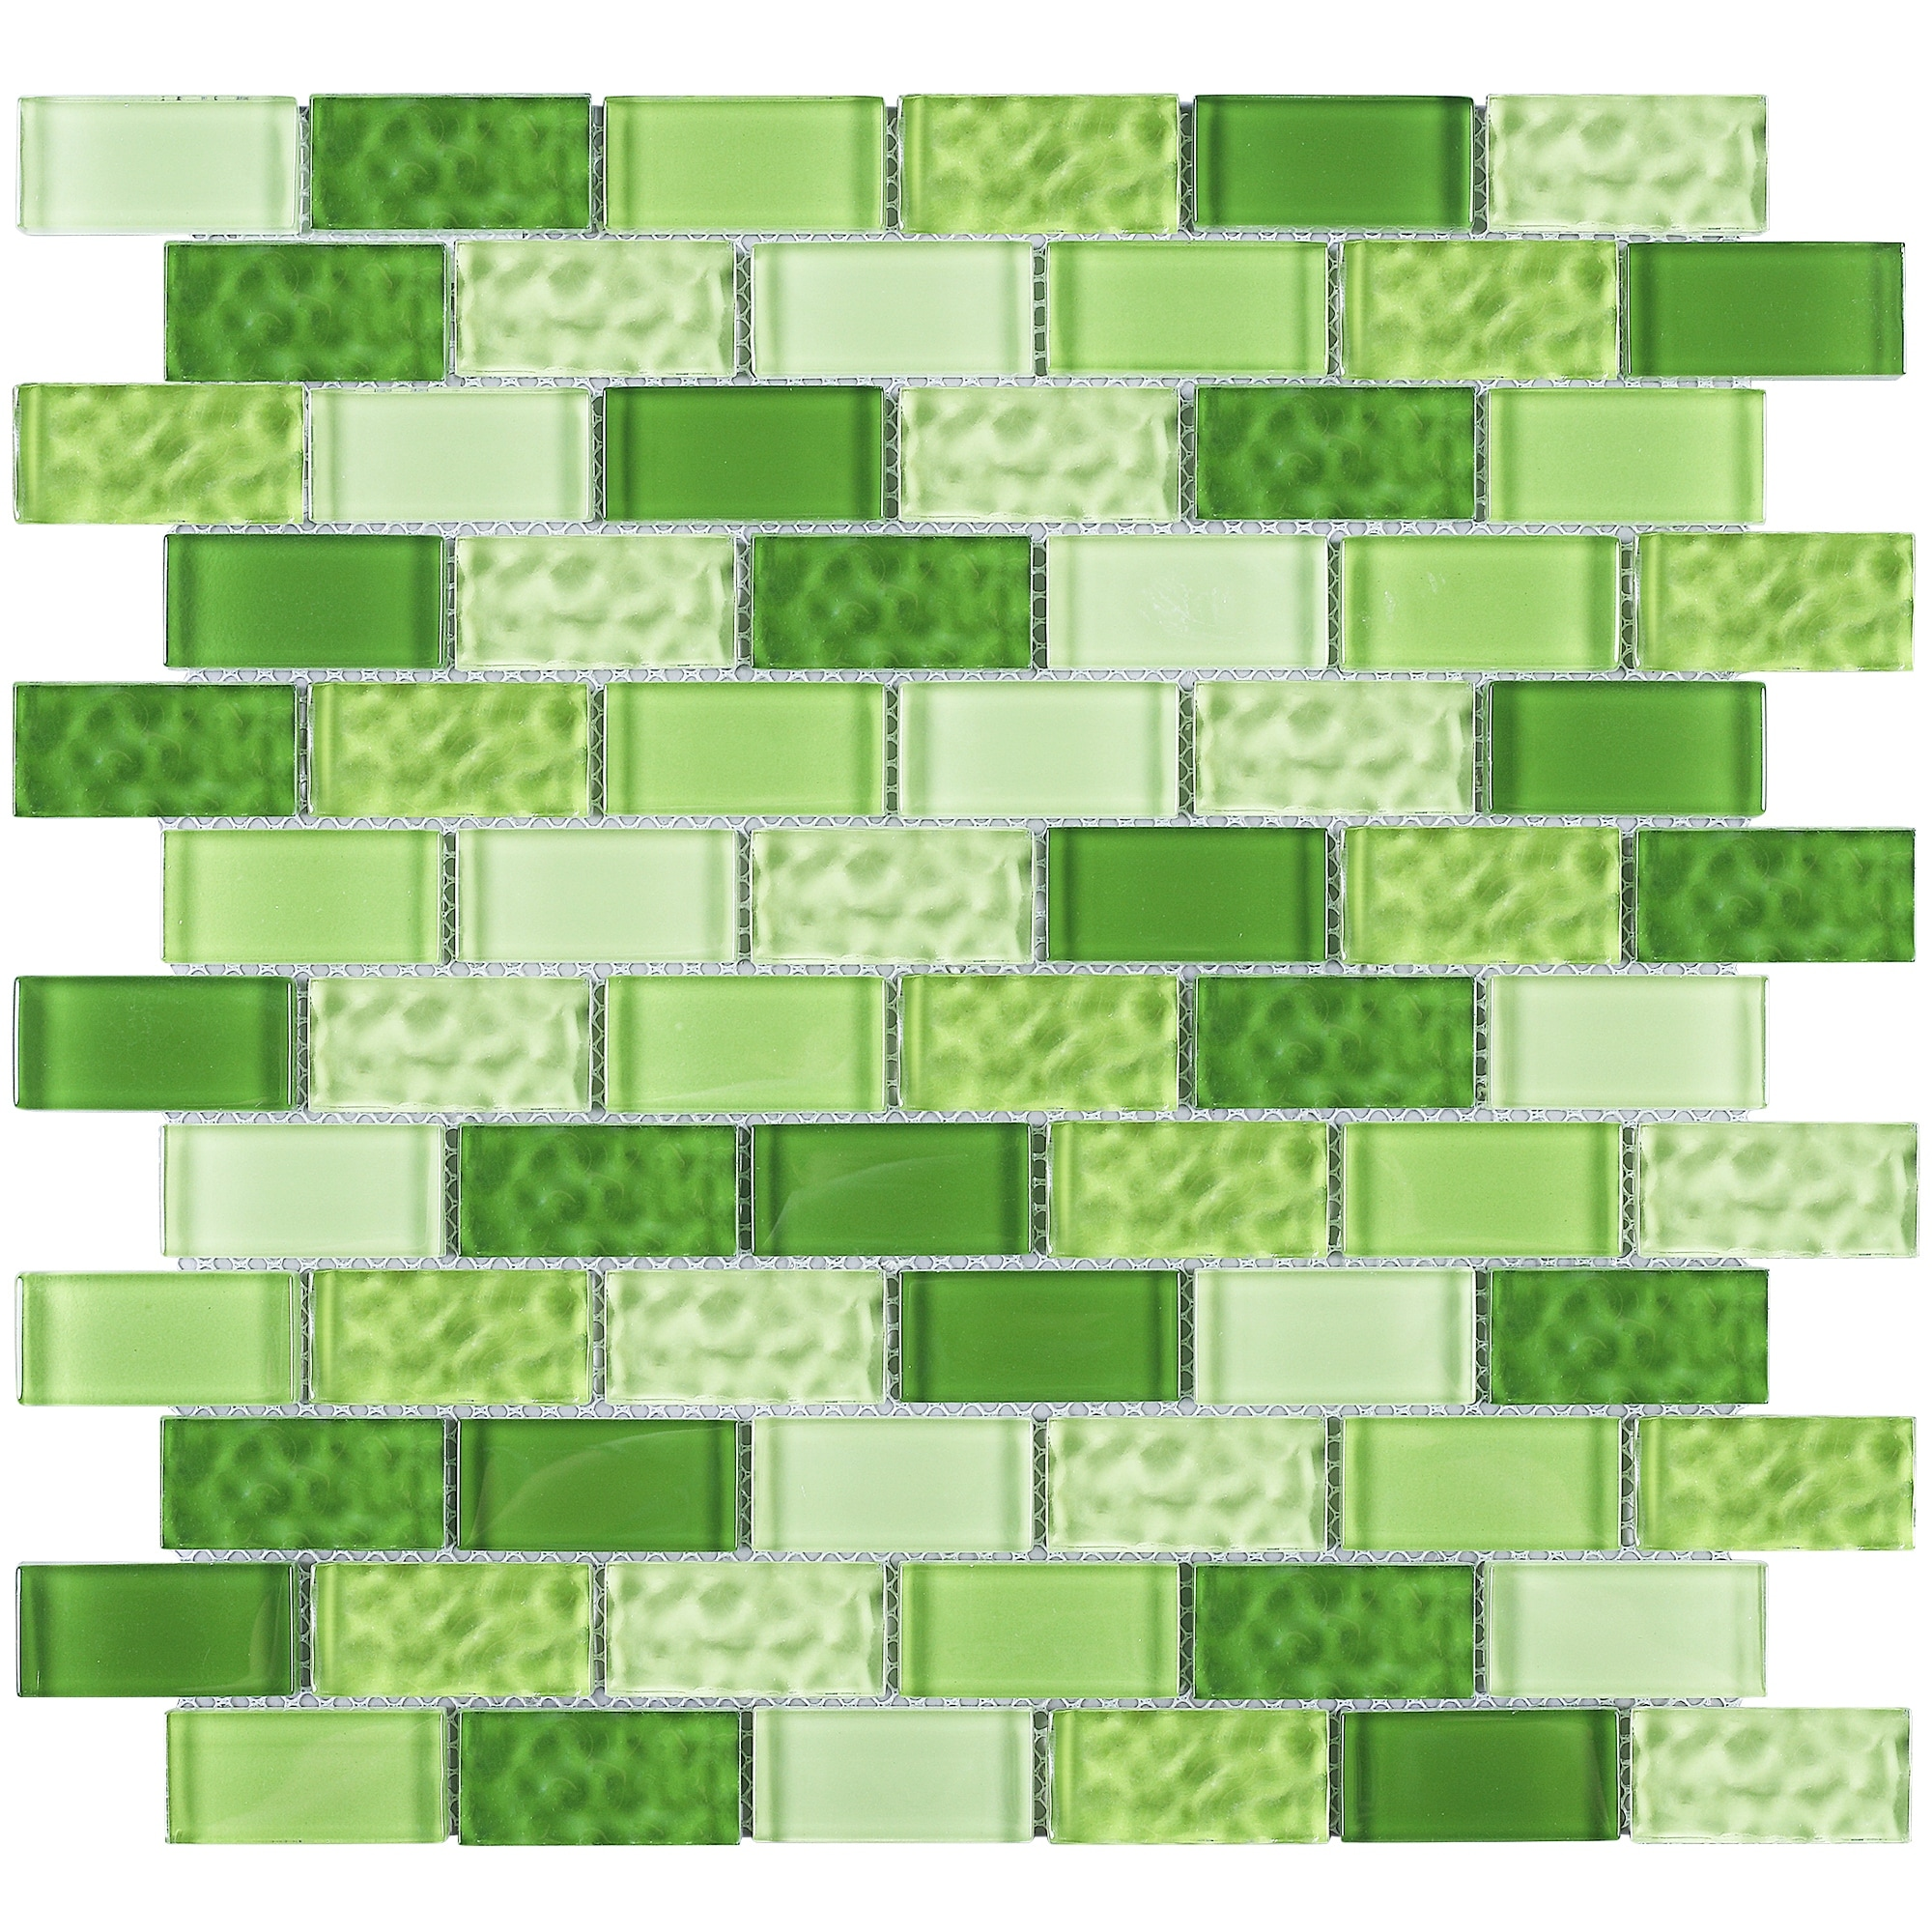 Tilegen Cockles 1 X 2 Glass Mosaic Tile In Green Wall Tile 10 Sheets 9 6sqft Overstock 27973185